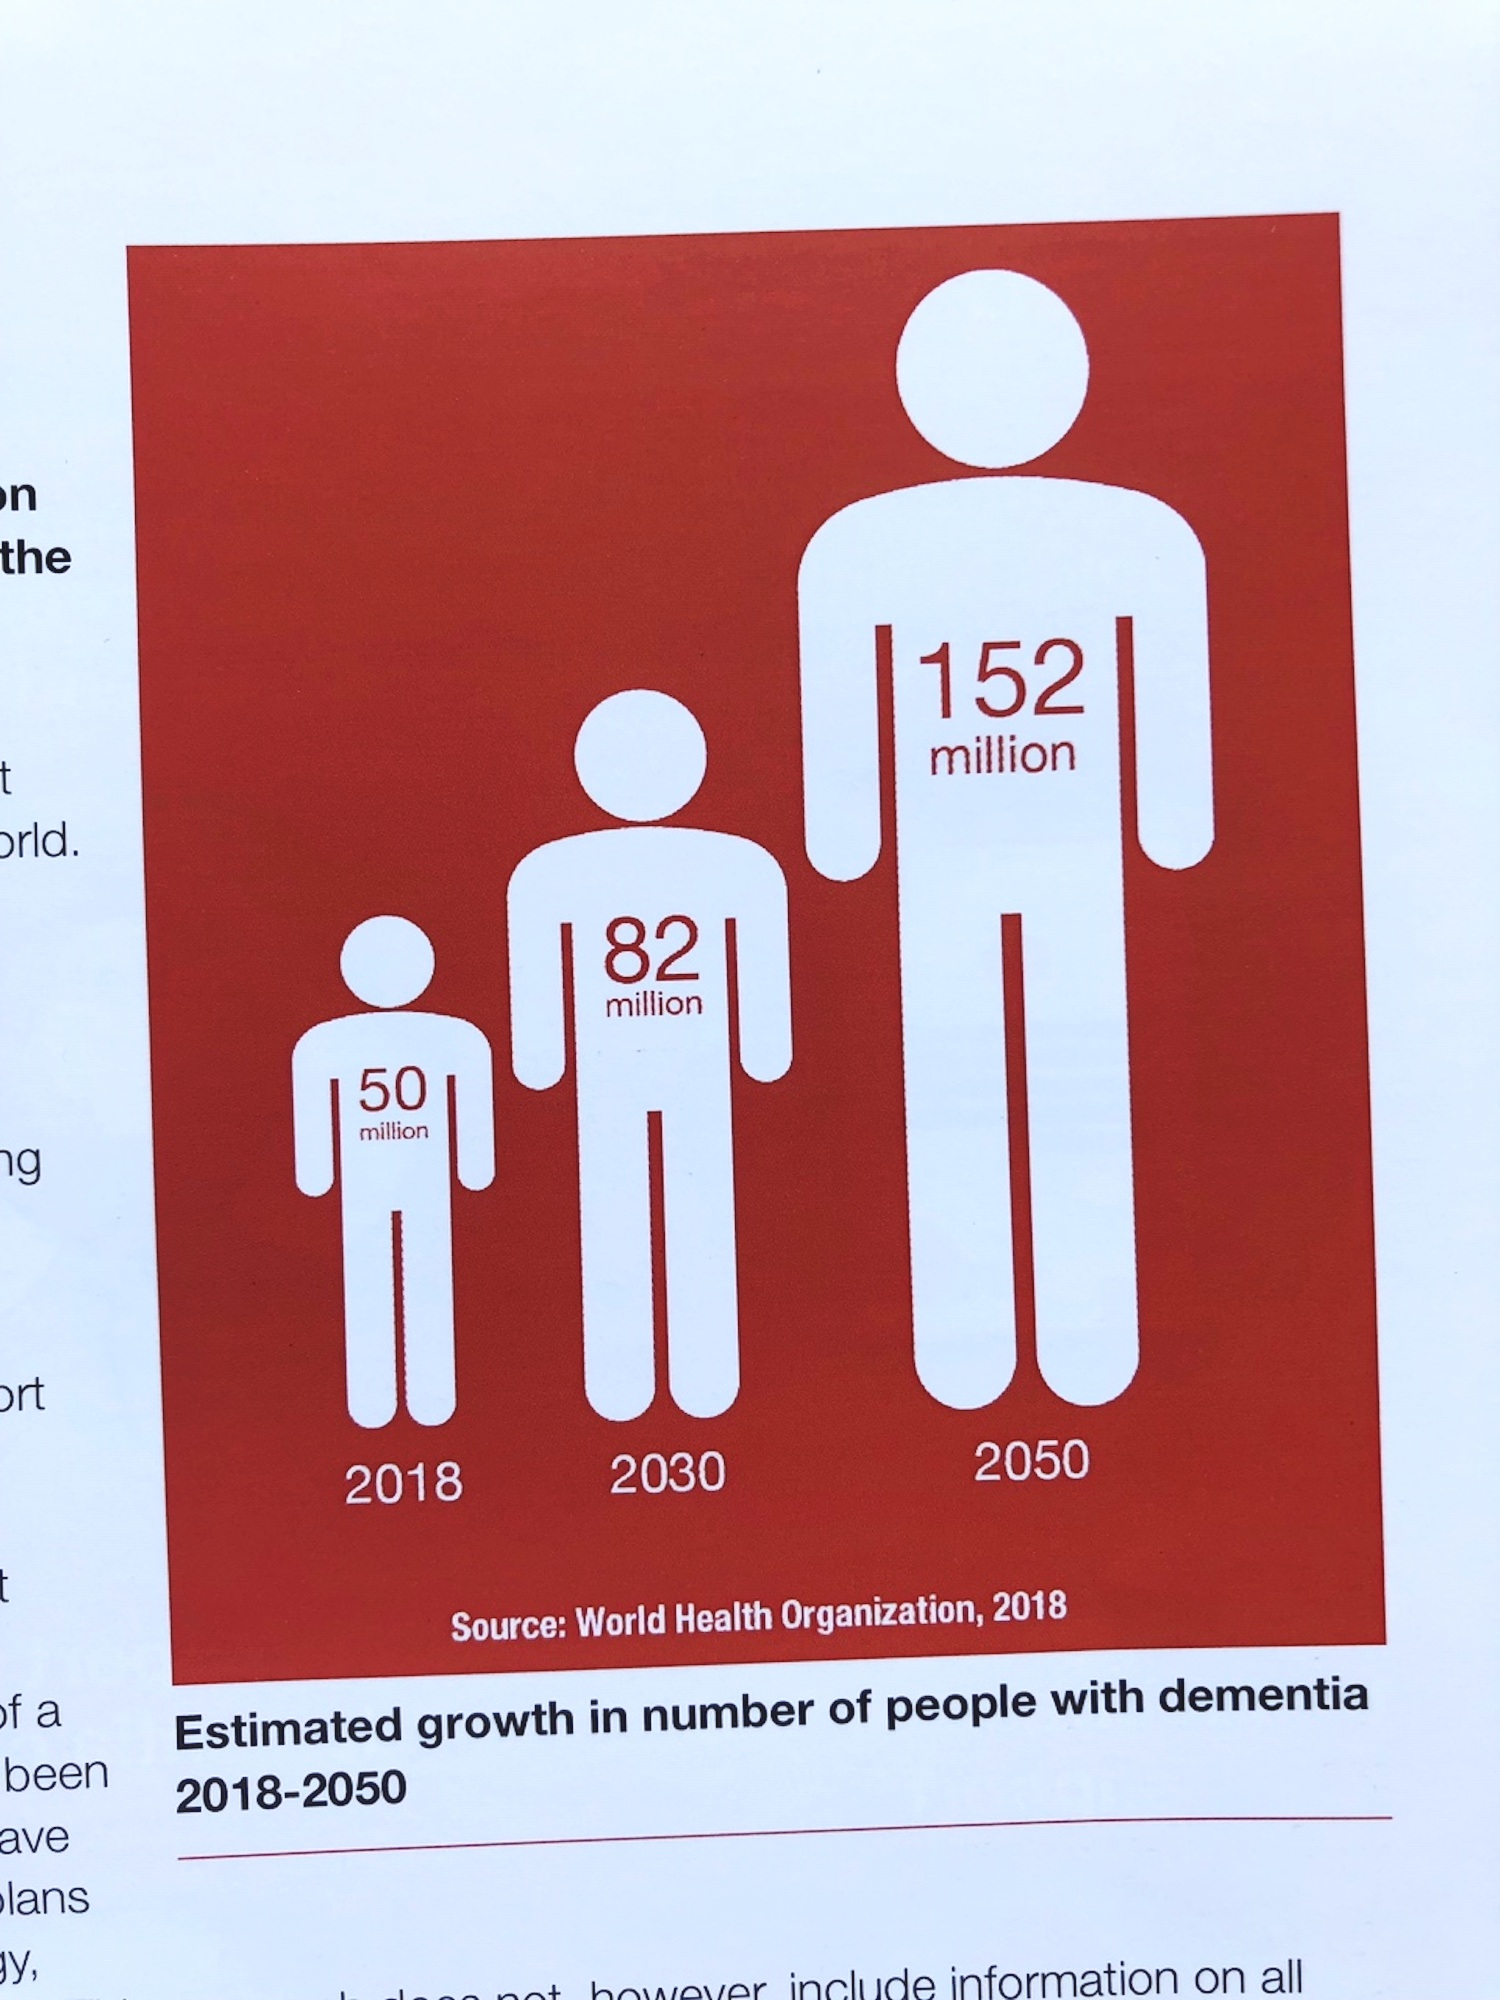 From Plan to Impact II: the urgent need for action, Alzheimer's Disease International, 2019